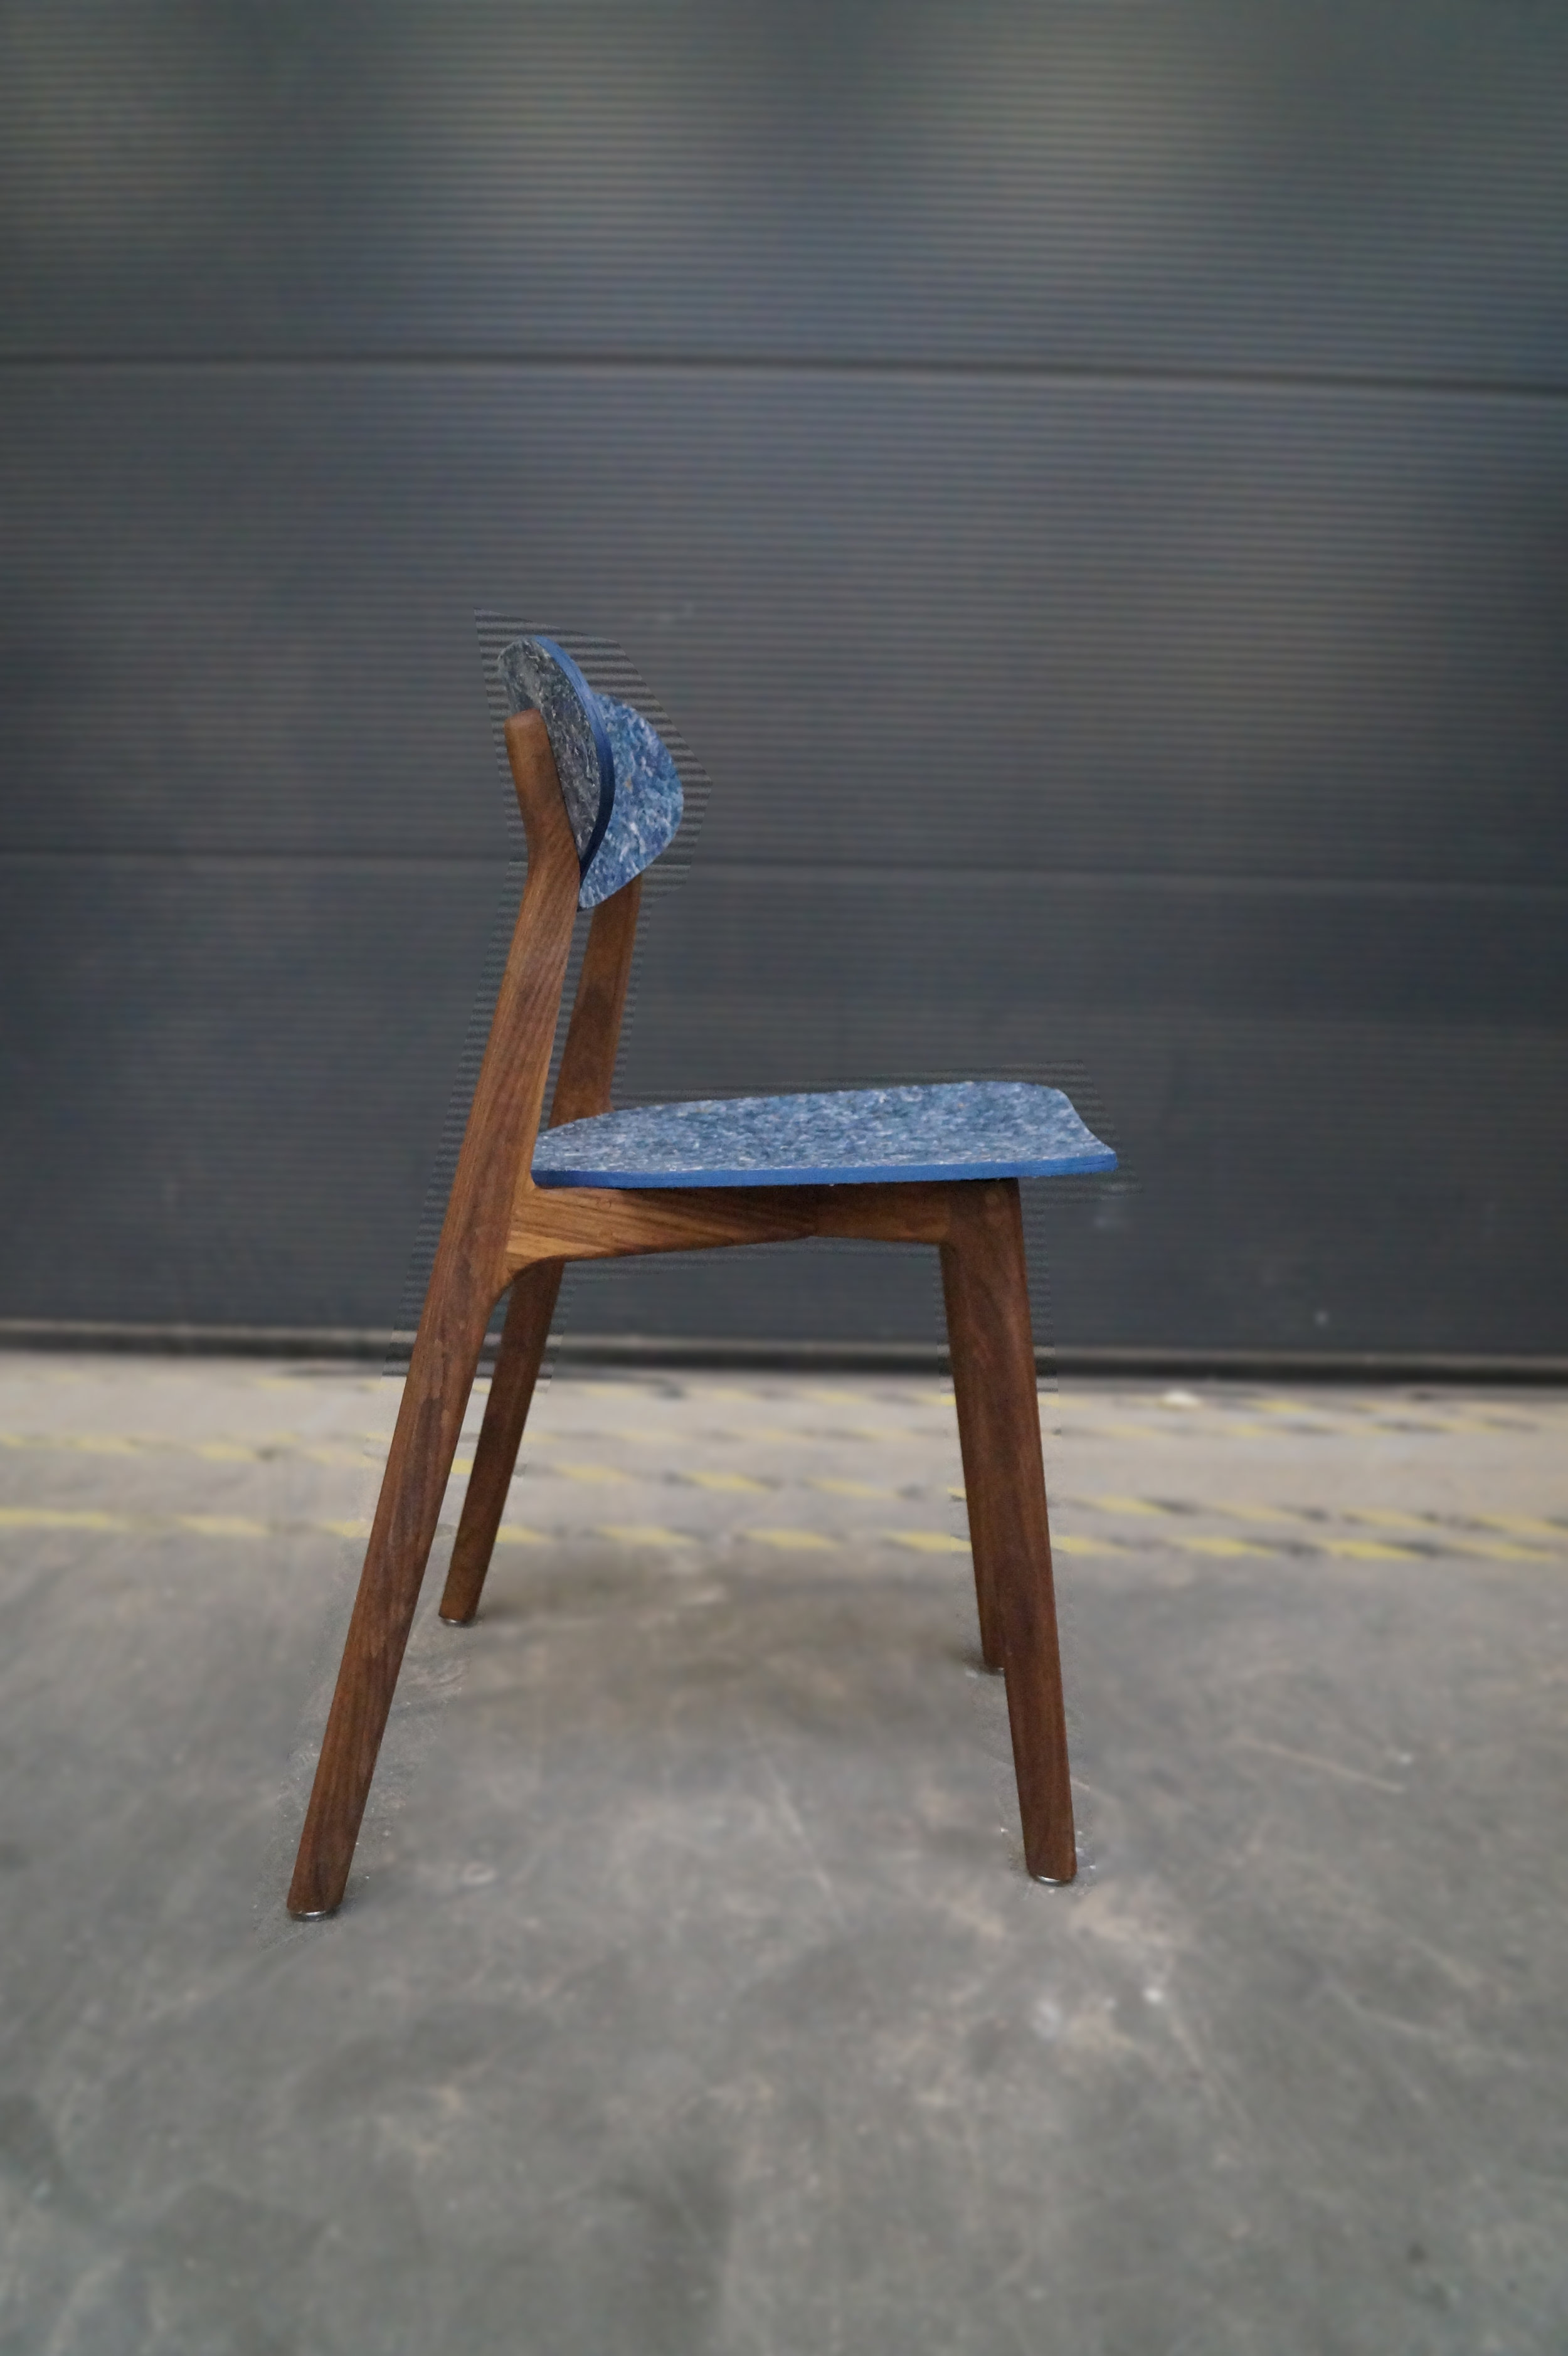 Ubu_Chair_Right_01.jpg